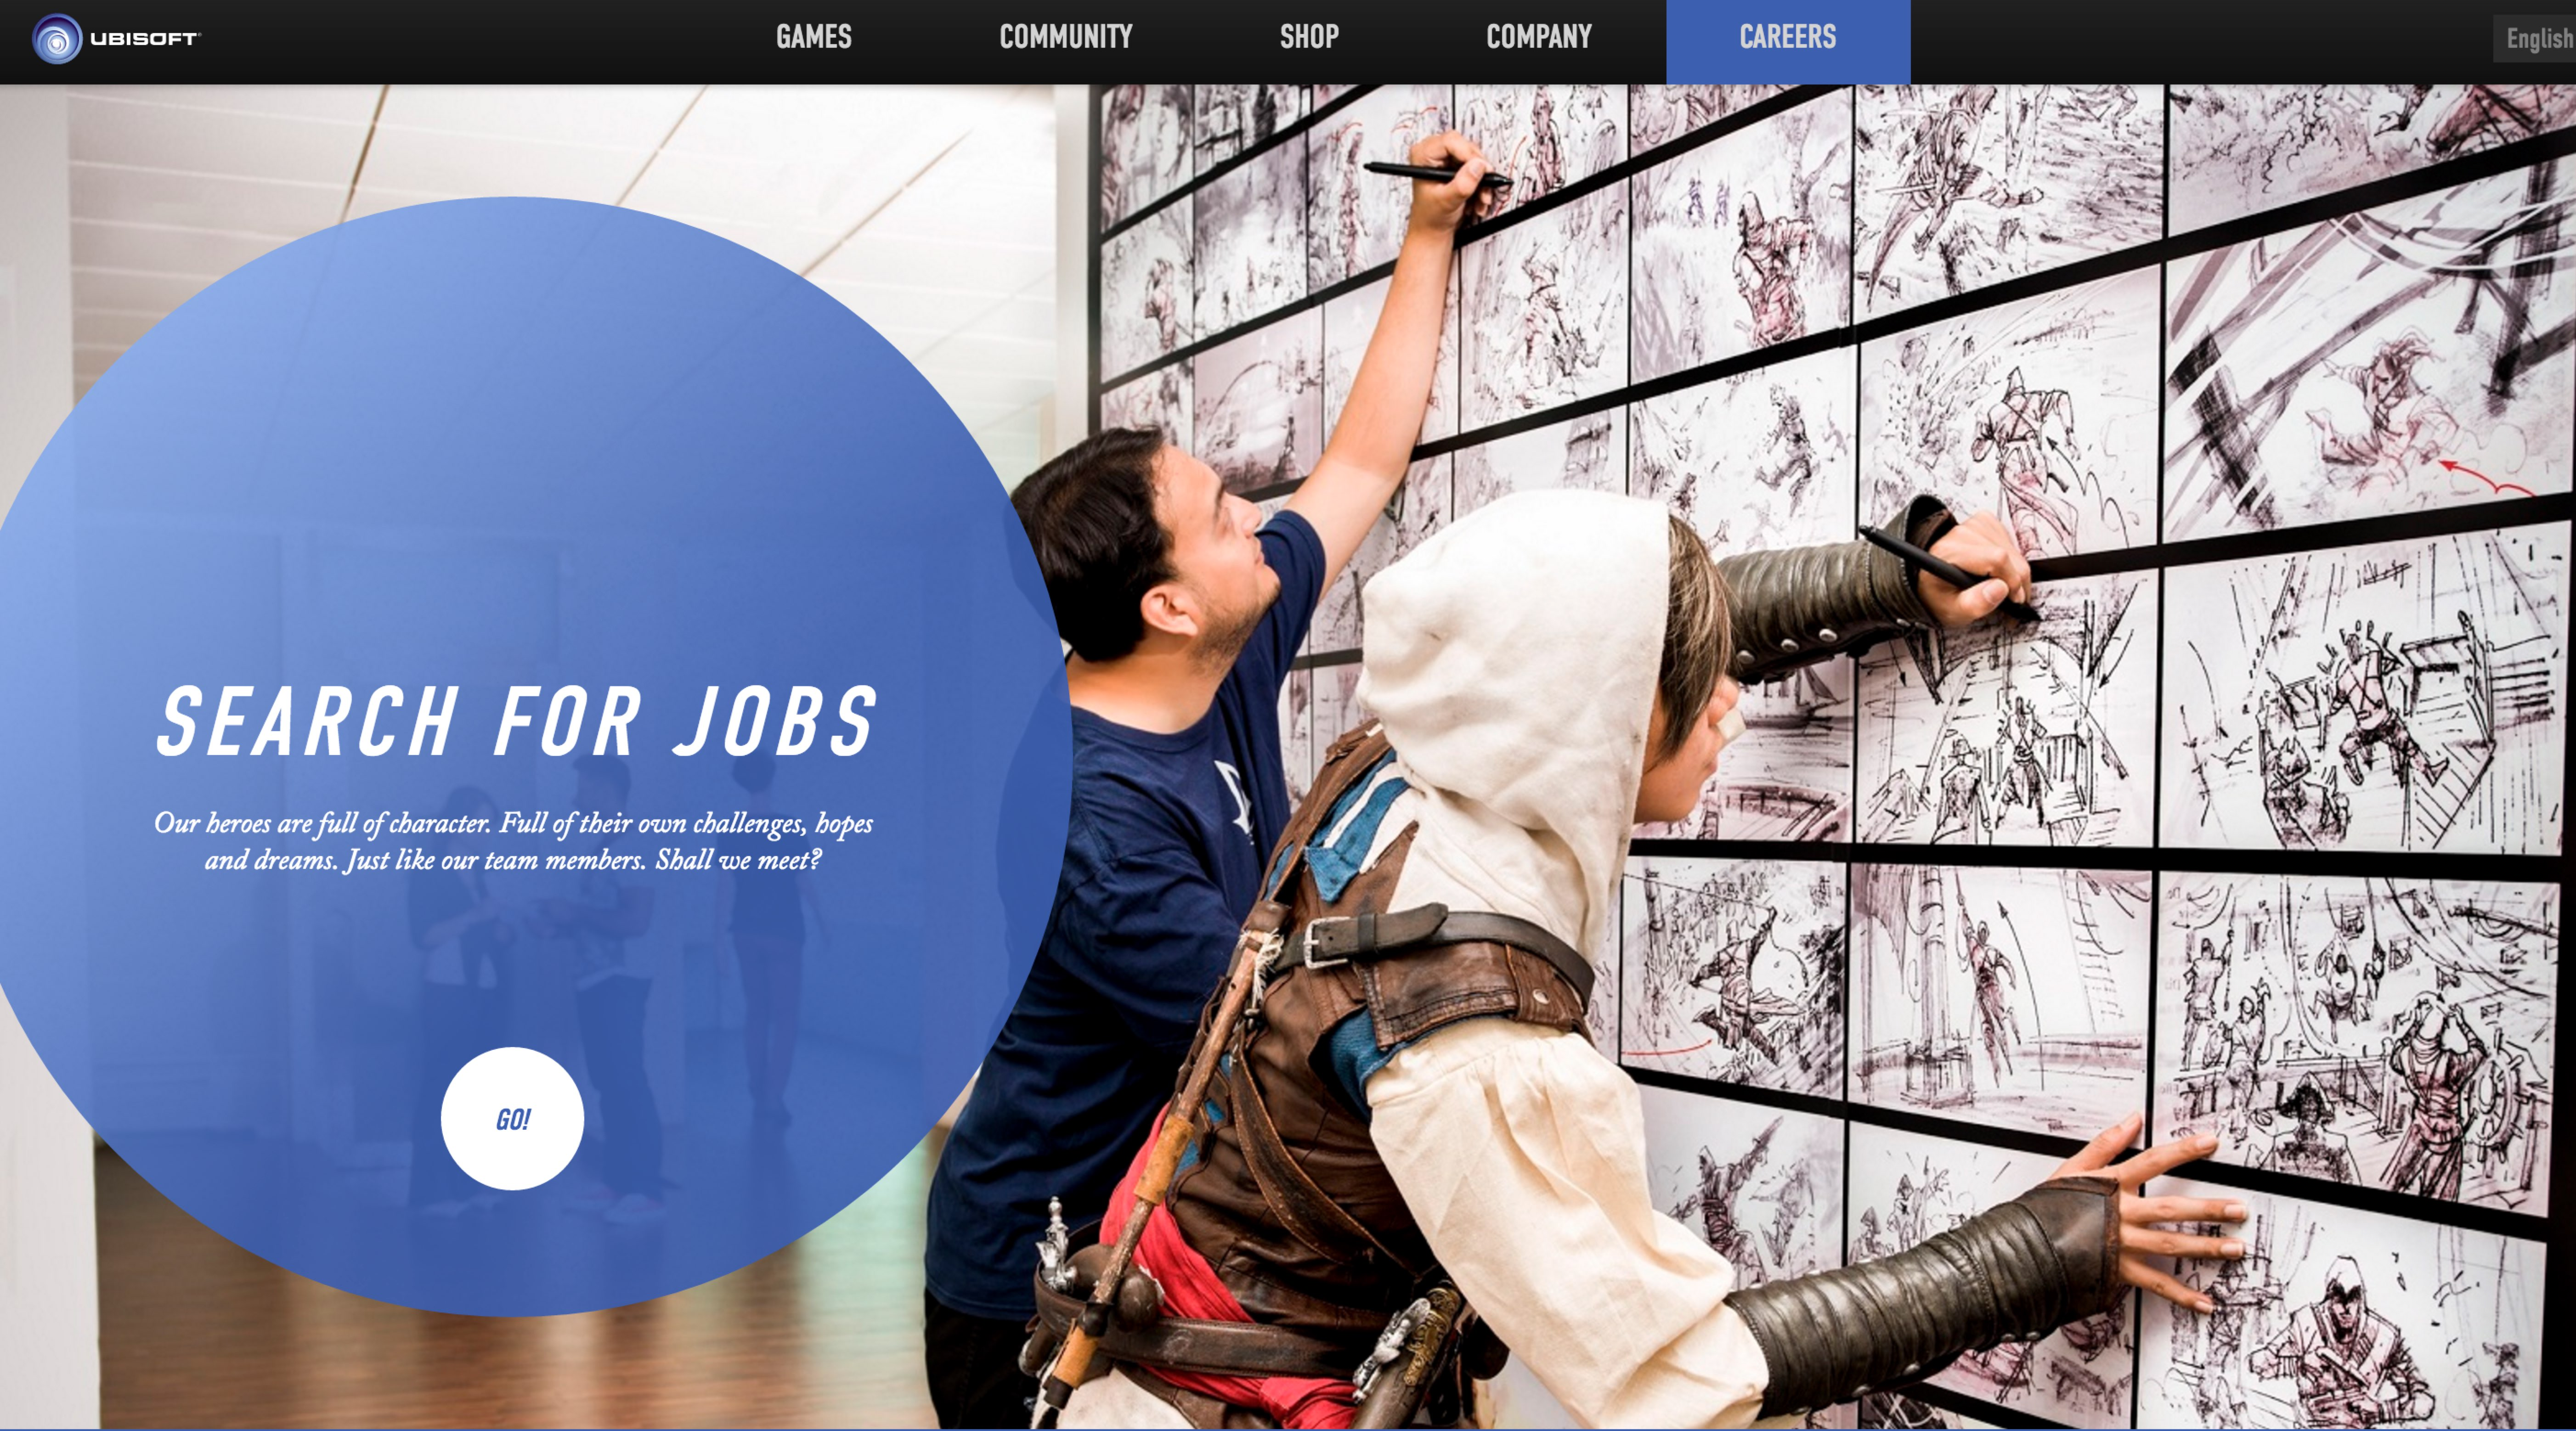 Best Company Career Sites Ubisoft Ongig Blog